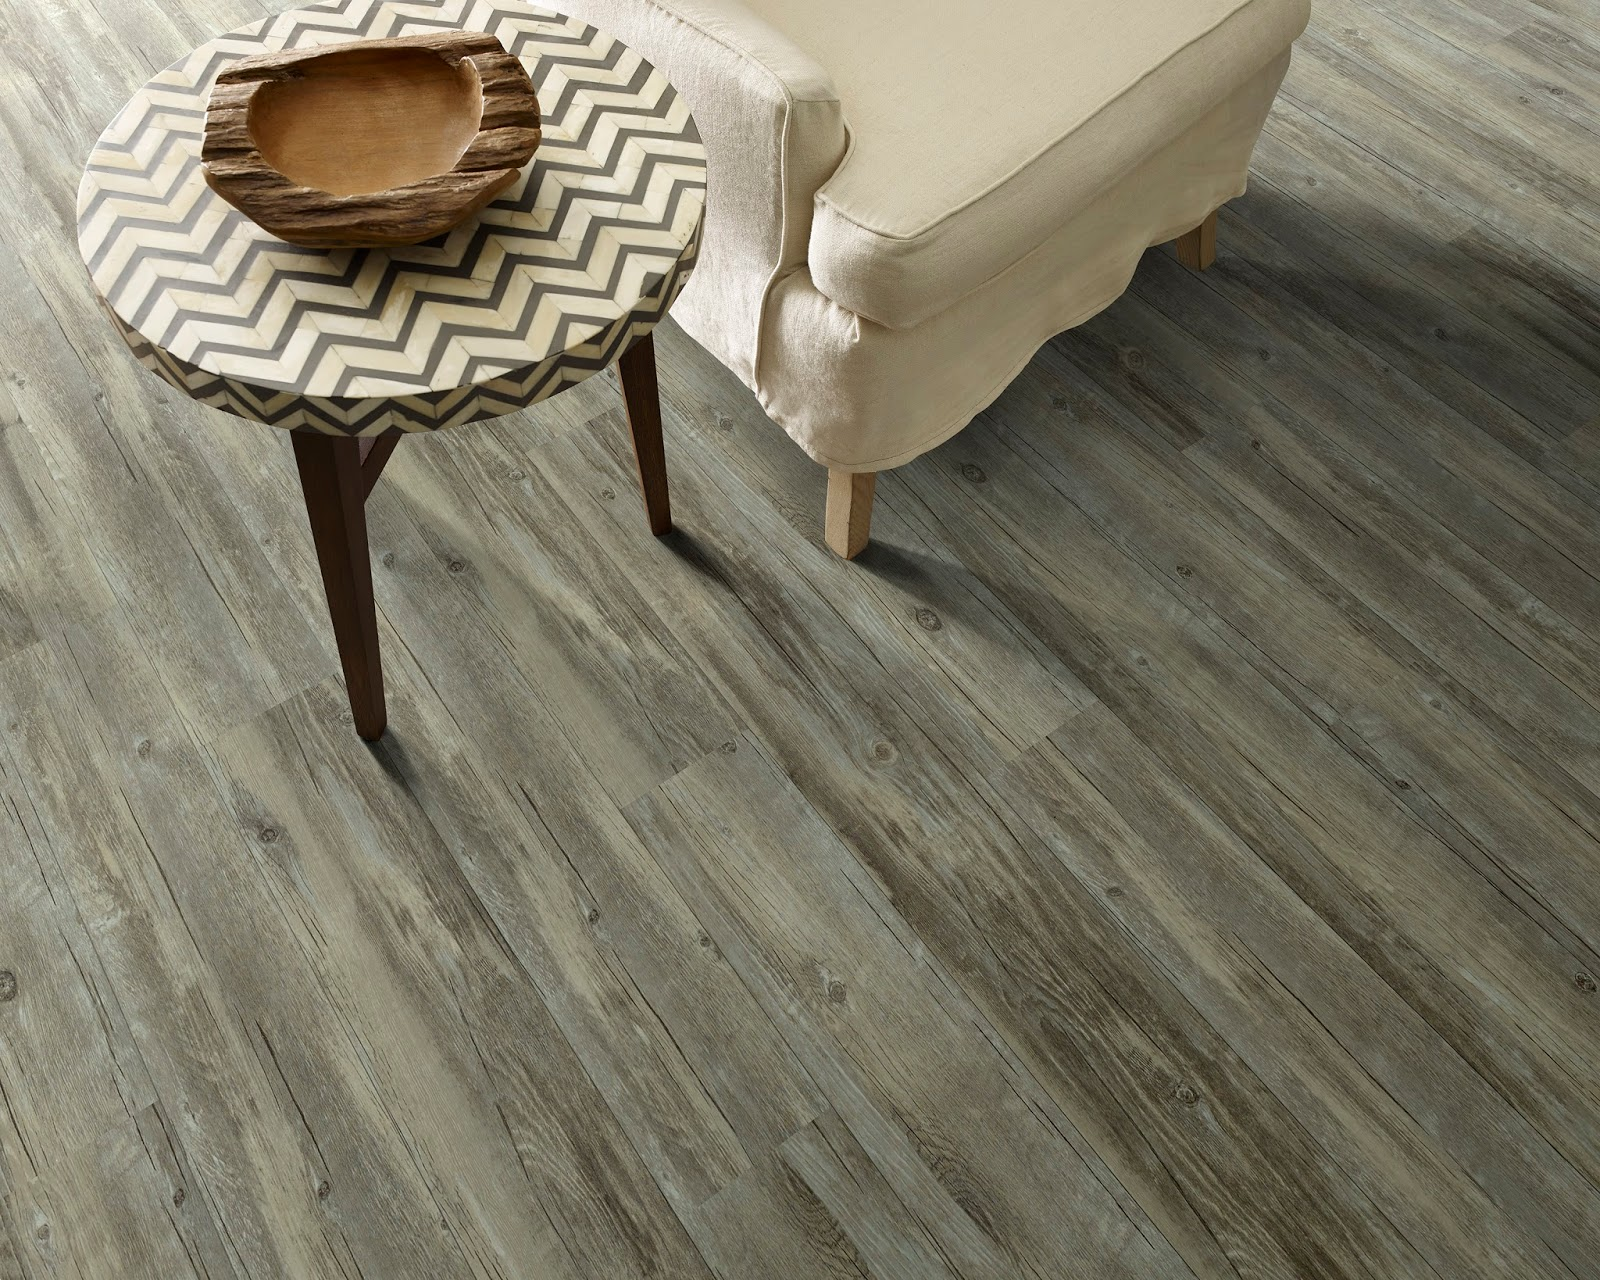 Is it hardwood or is it resilient flooring? The appearance is hard to tell apart!